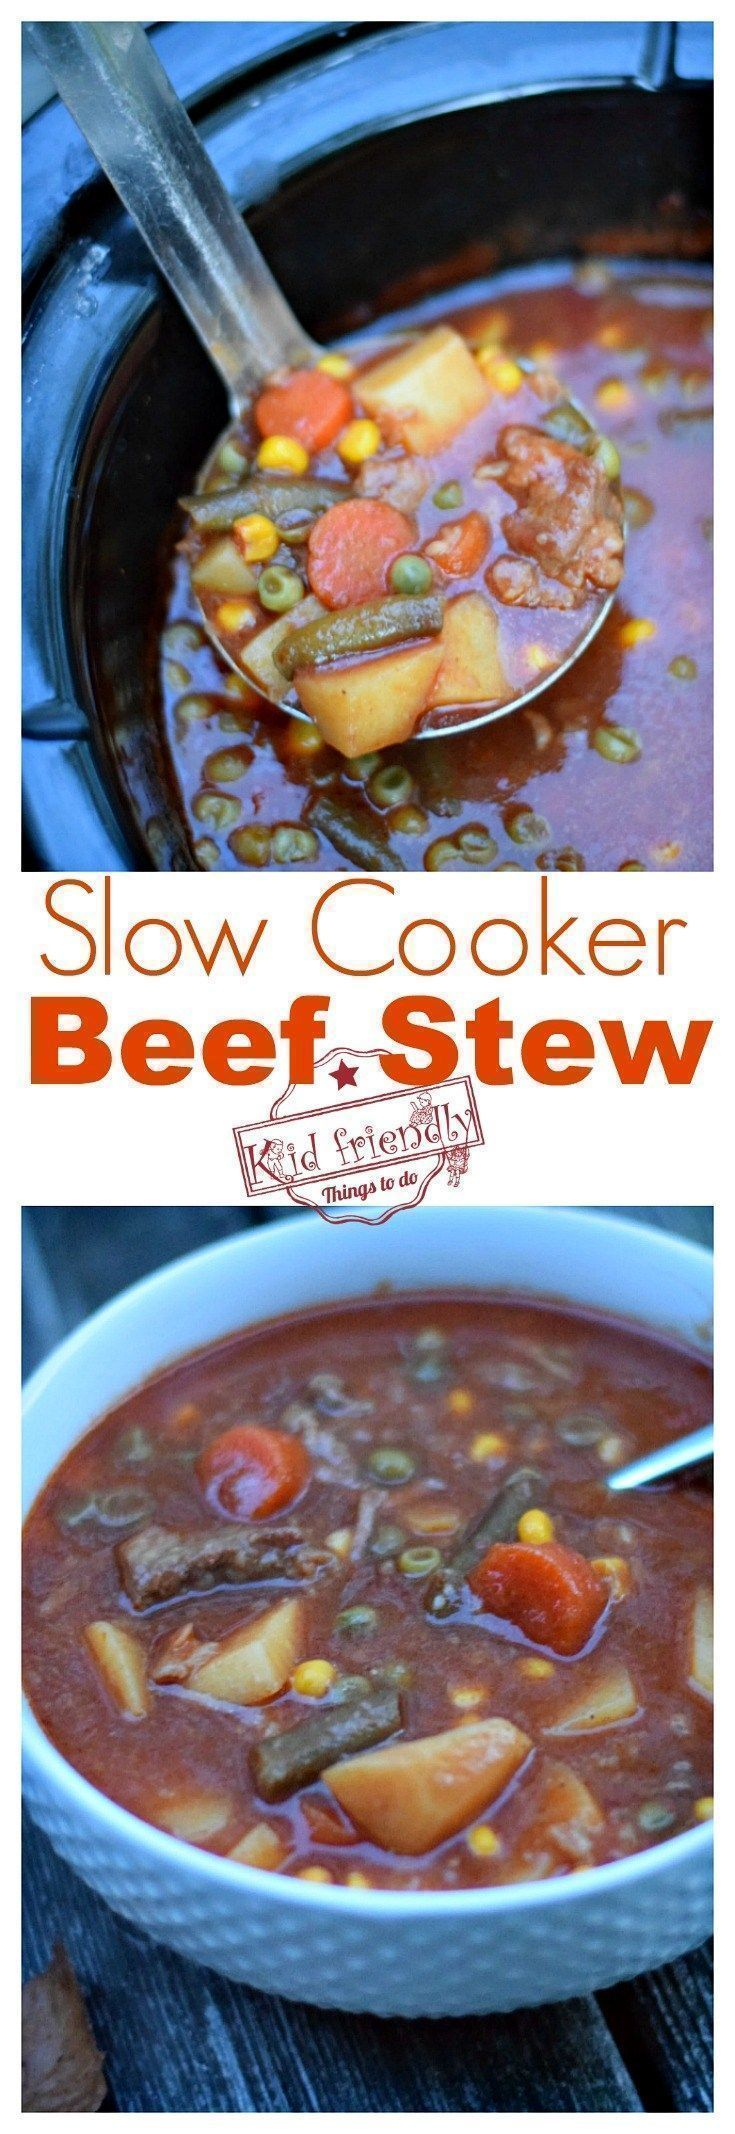 The Best Crockpot Beef Stew Recipe - Old Recipe - Easy to Make - You can also make this on the stovetop - The perfect comfort food - Healthy and Simple to make and so delicious. www.kidfriendlythingstodo.com